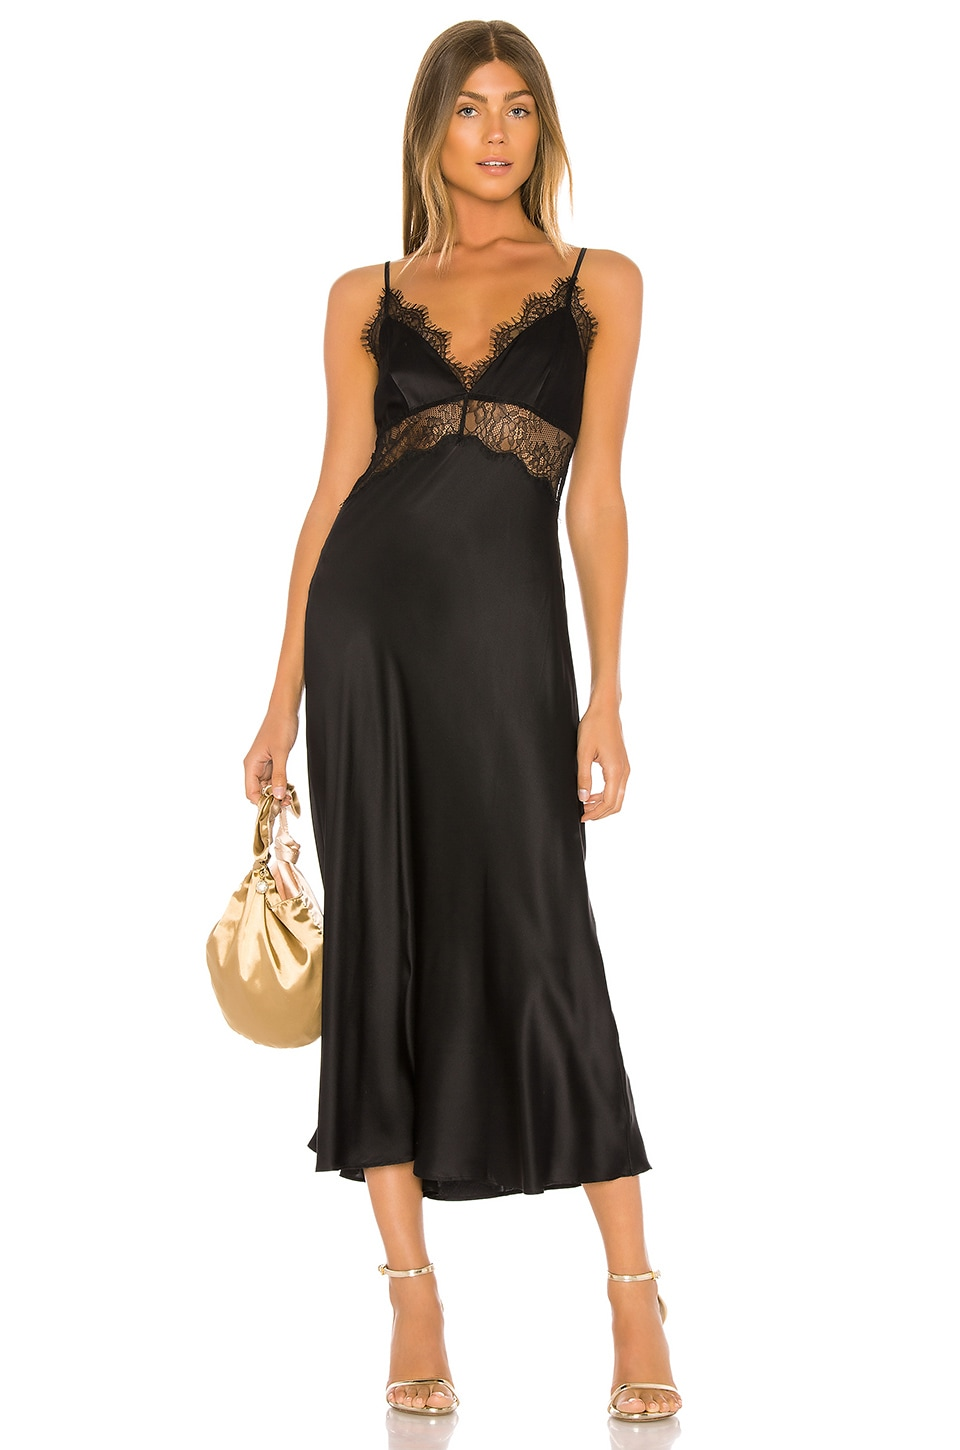 CAMI NYC The Tucker Dress in Black